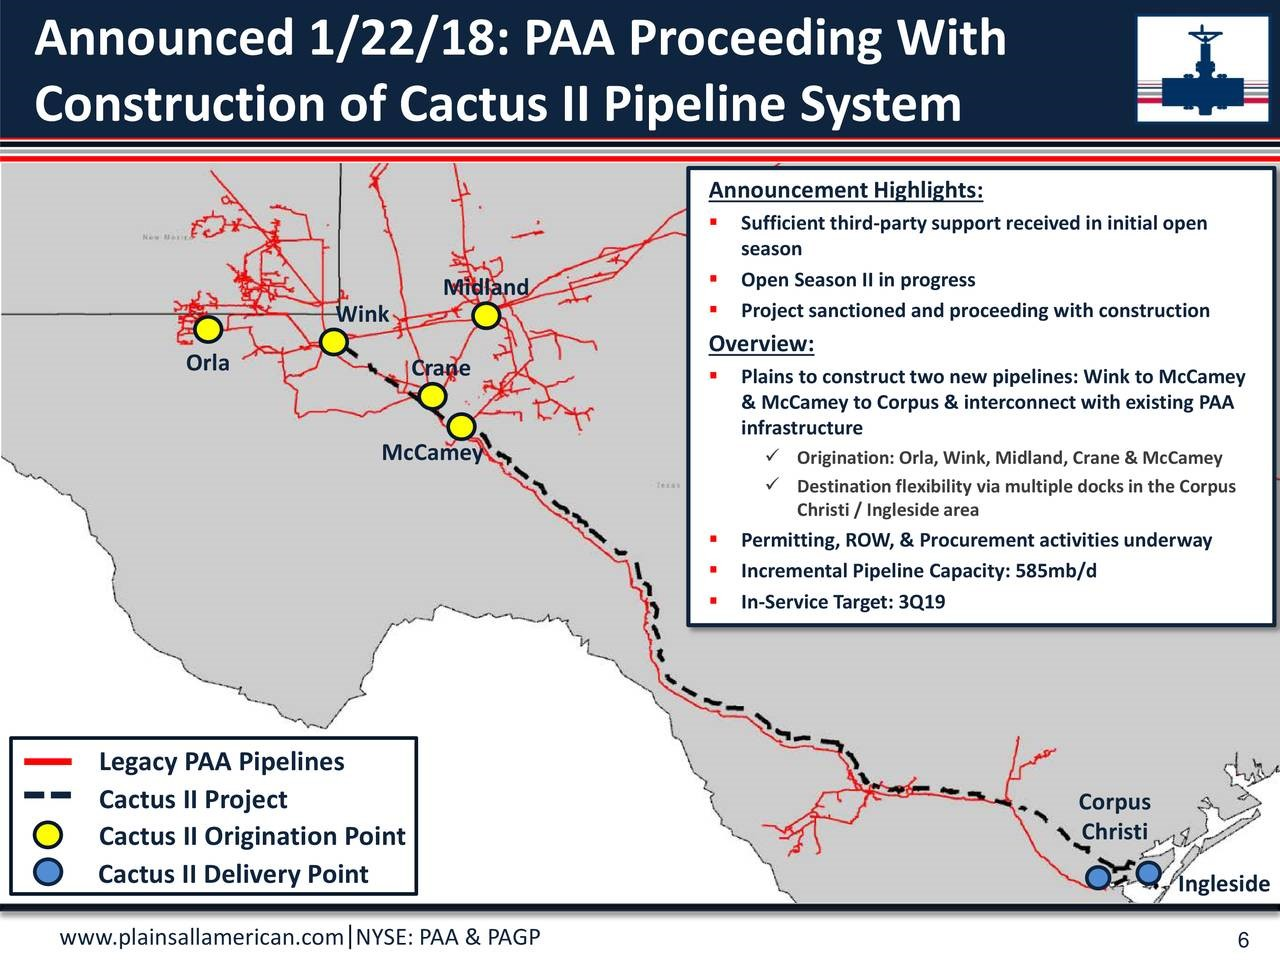 plains all american pipeline company has been denied a request for an exemption from steel import tariffs this will hit plans to build much needed takeaway